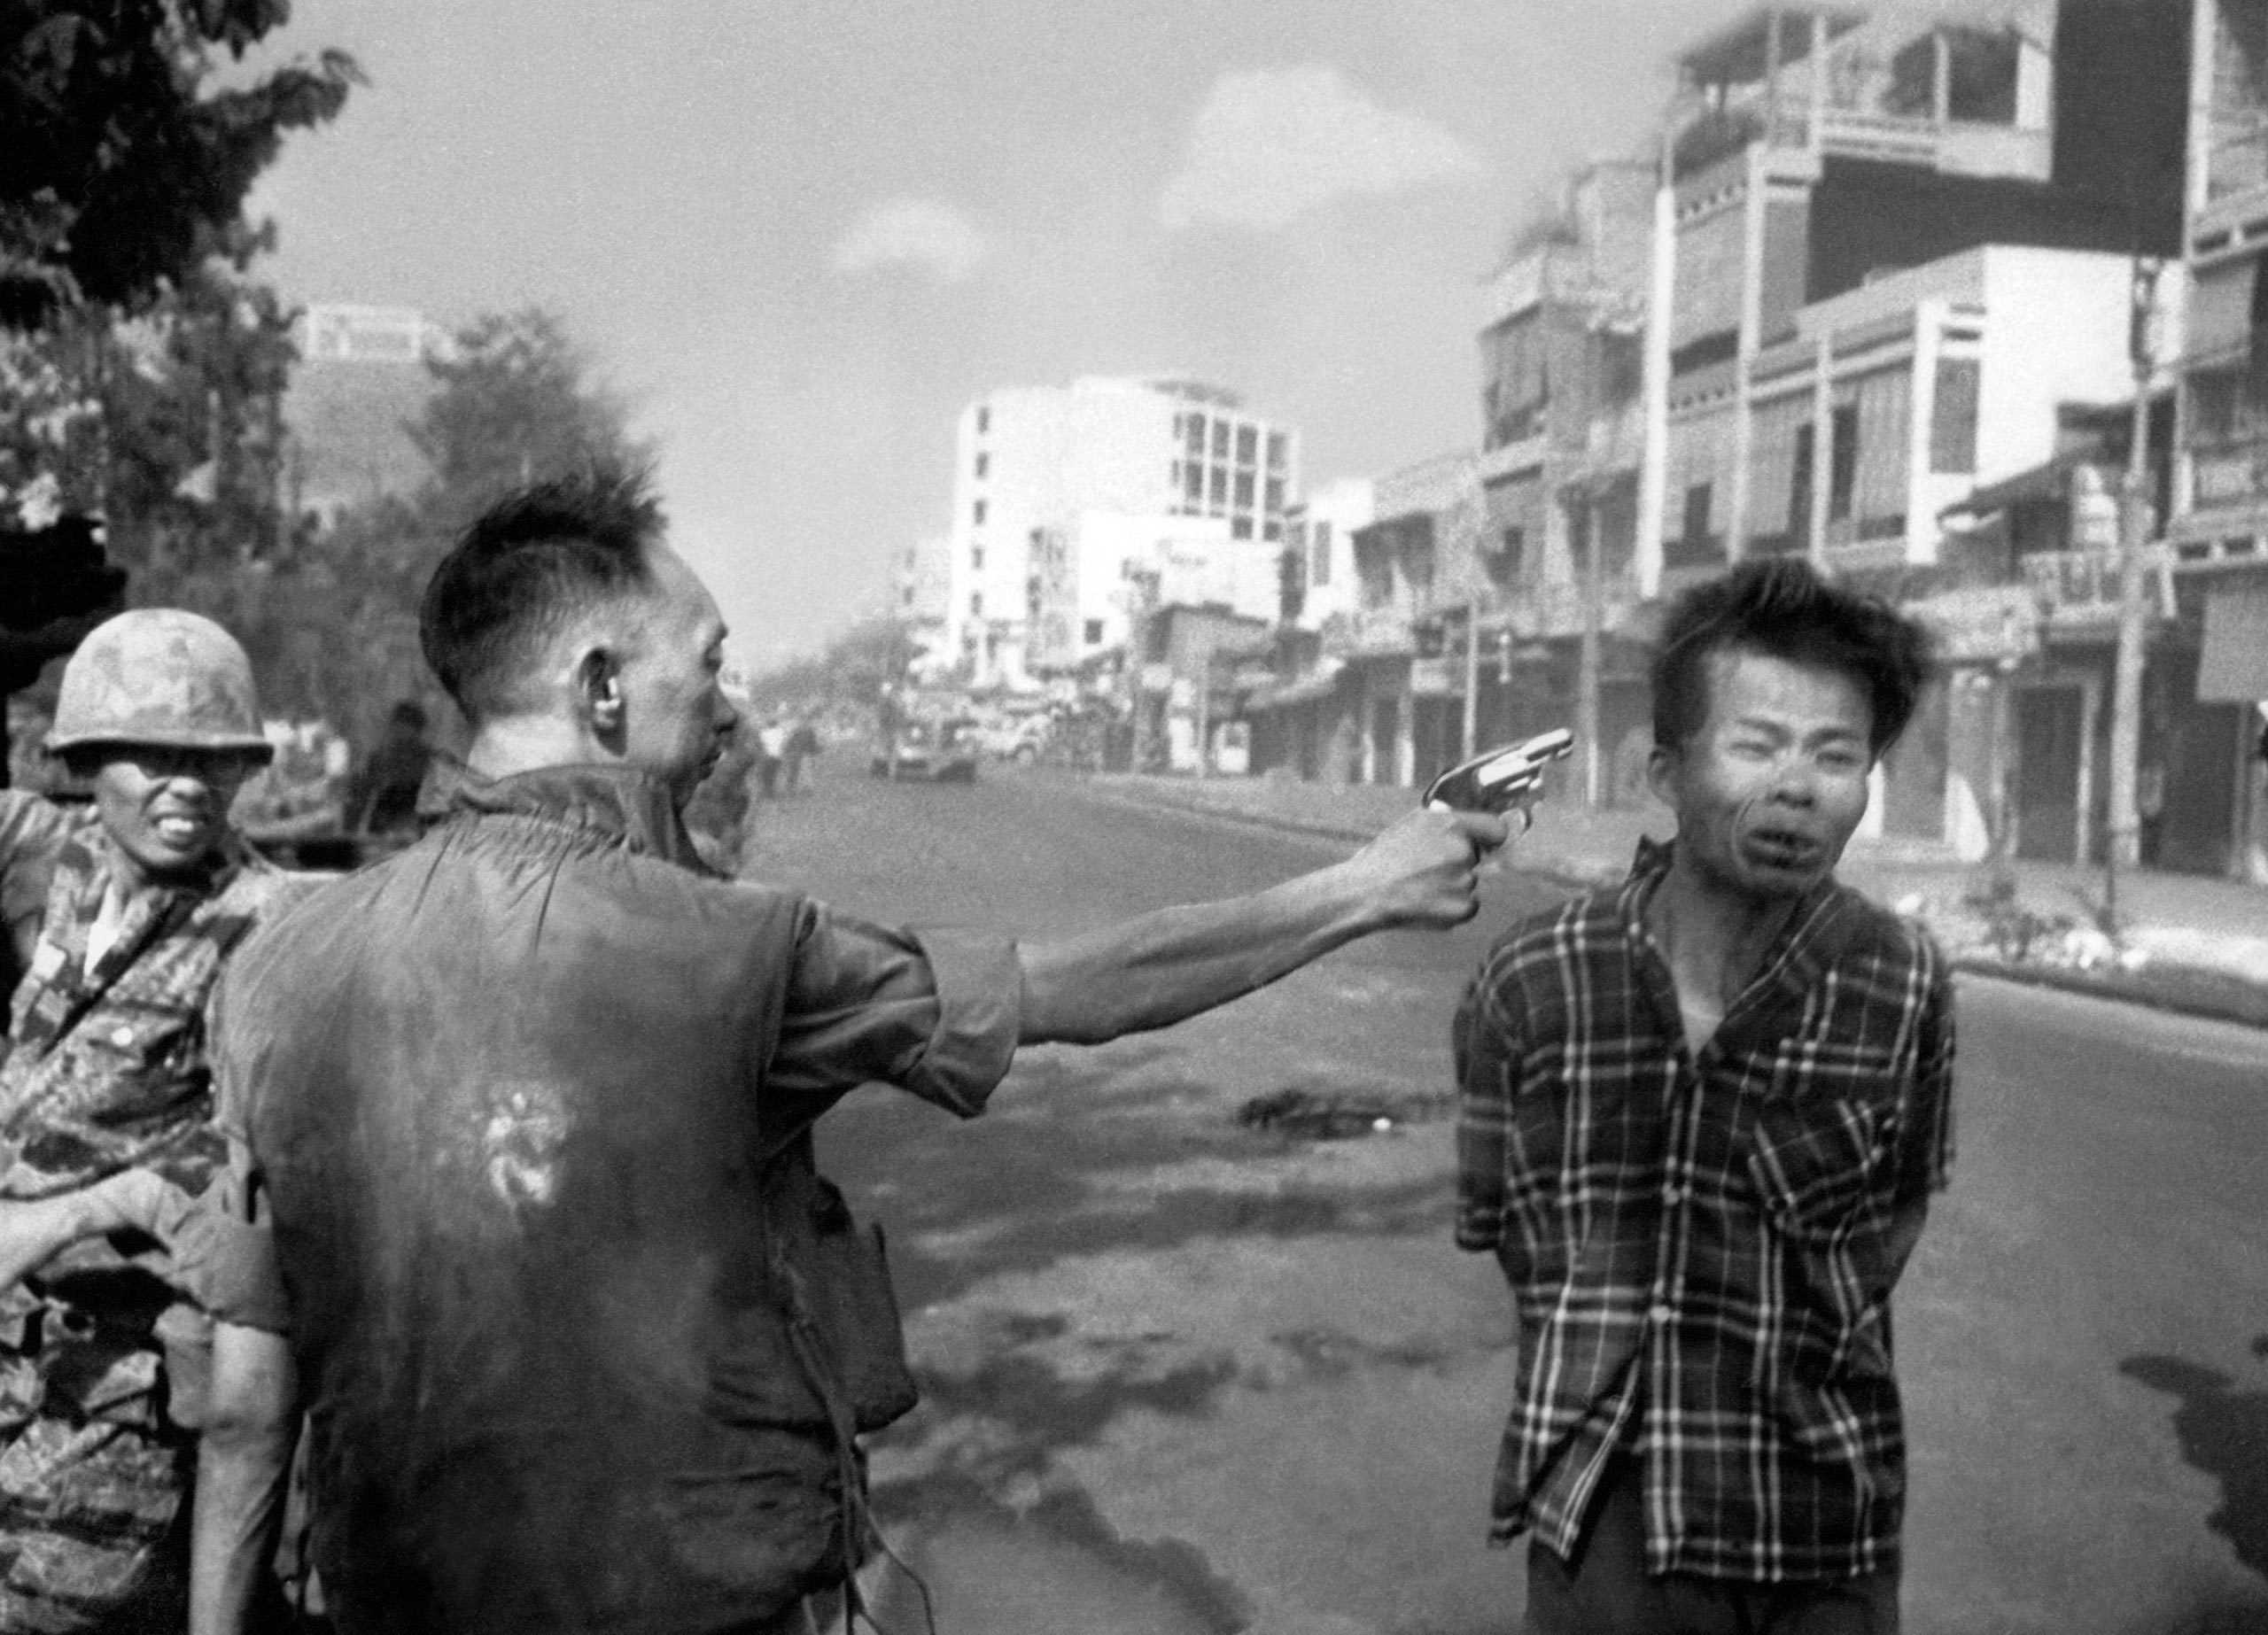 South Vietnamese Gen. Nguyen Ngoc Loan, chief of the national police, fires his pistol and executes suspected Viet Cong officer Nguyen Van Lem in Saigon on Feb. 1, 1968.